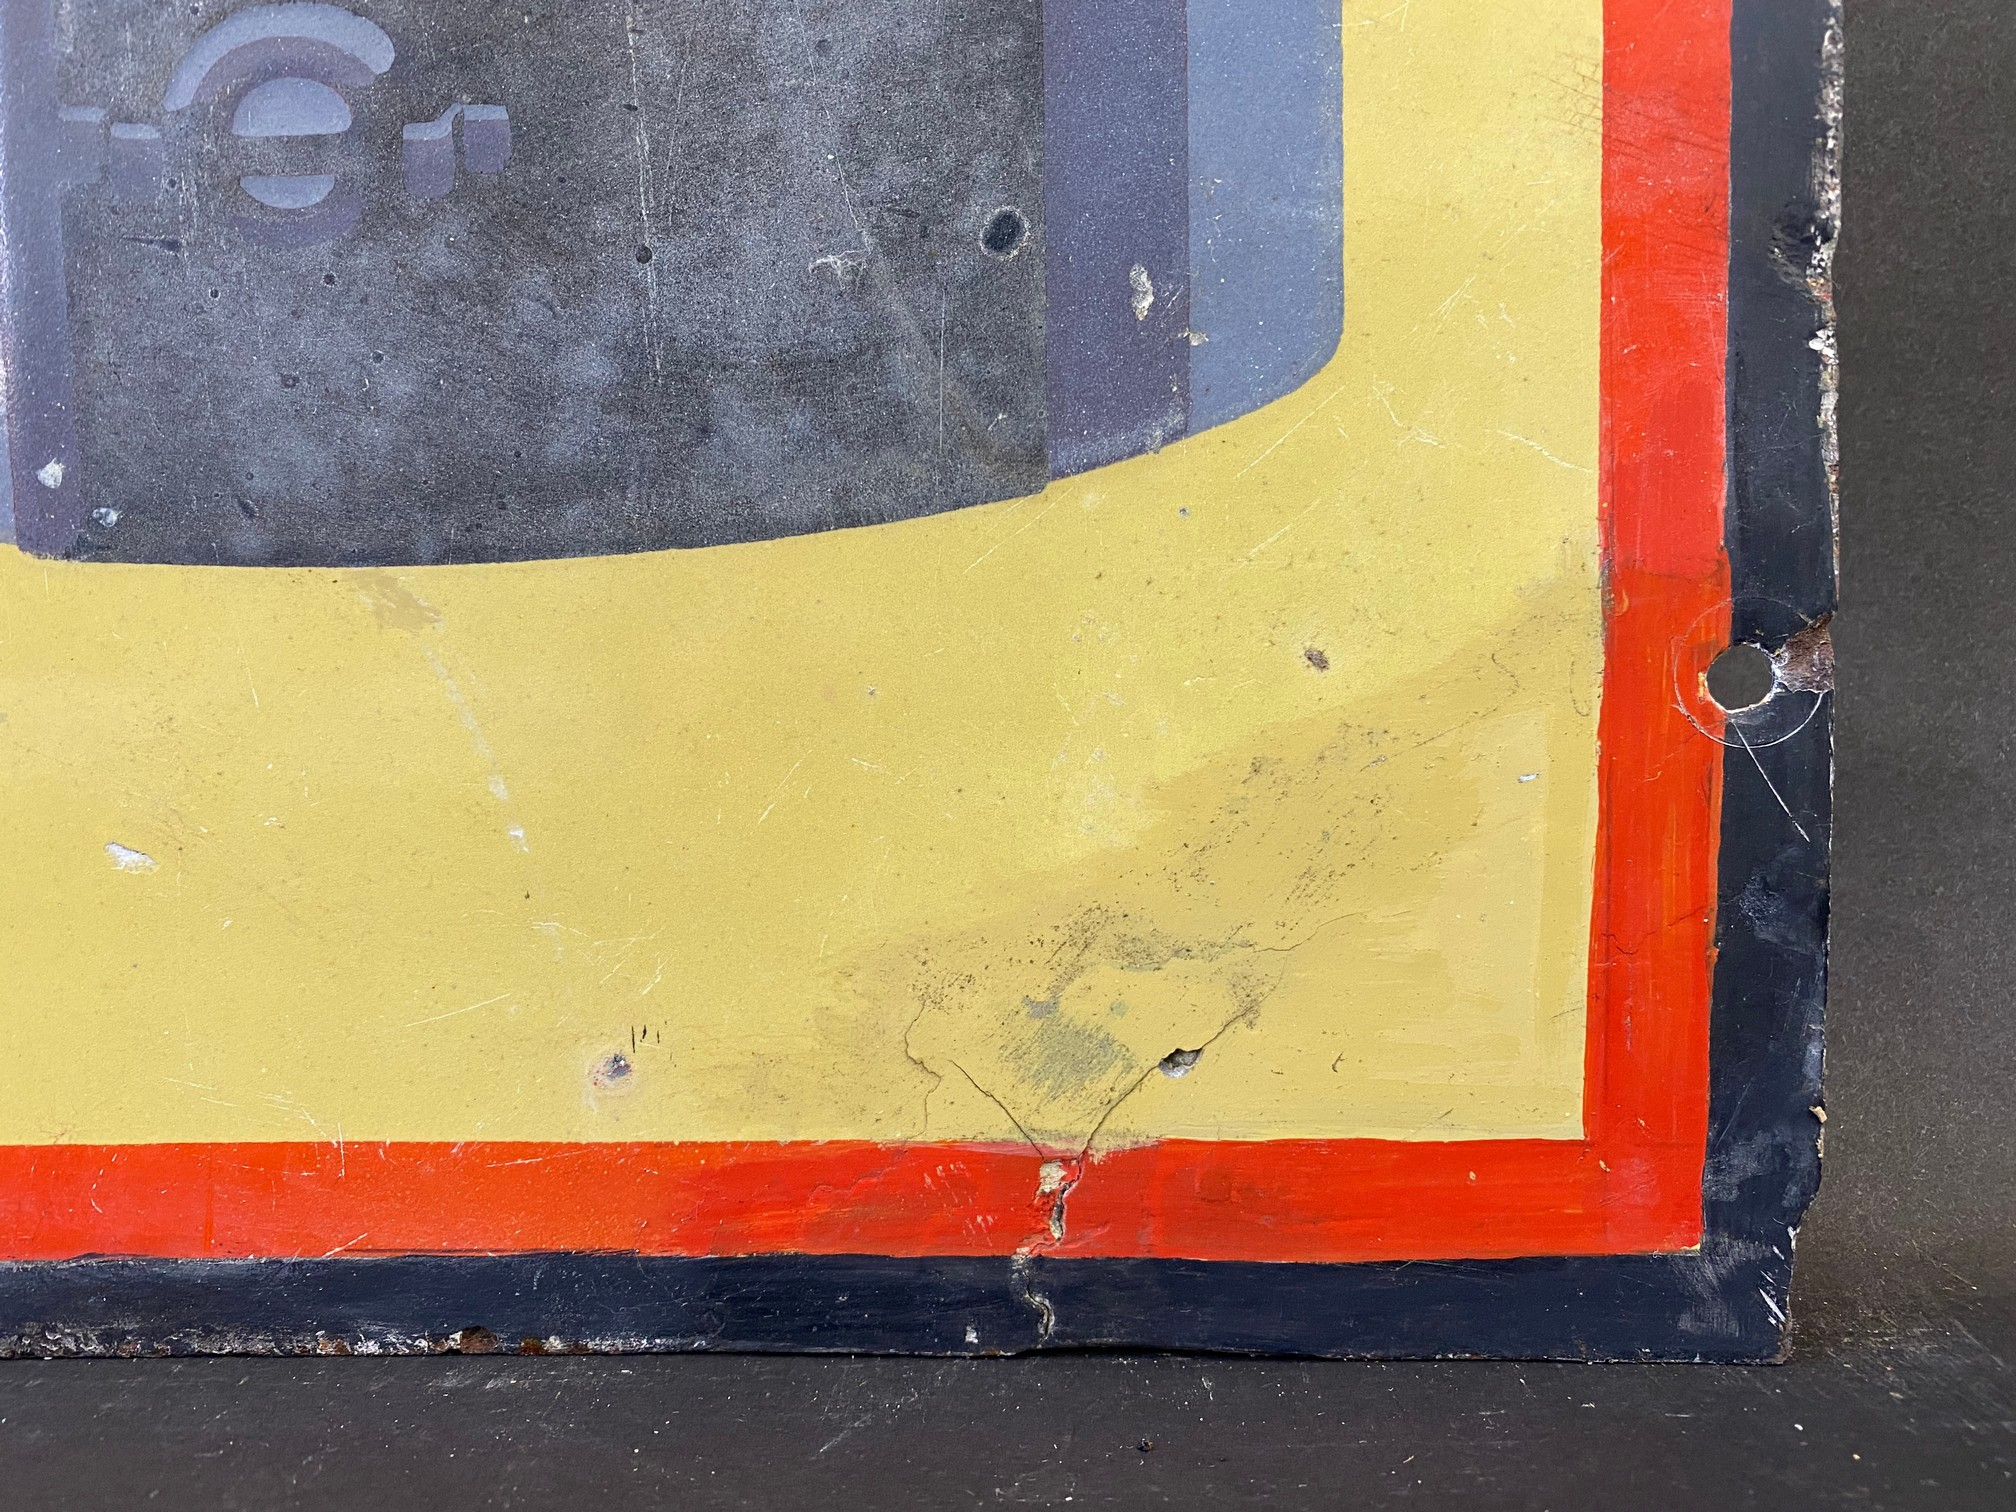 A Shell Lubricating Oils 'Every Drop Tells' pictorial enamel sign with some patches of - Image 5 of 8